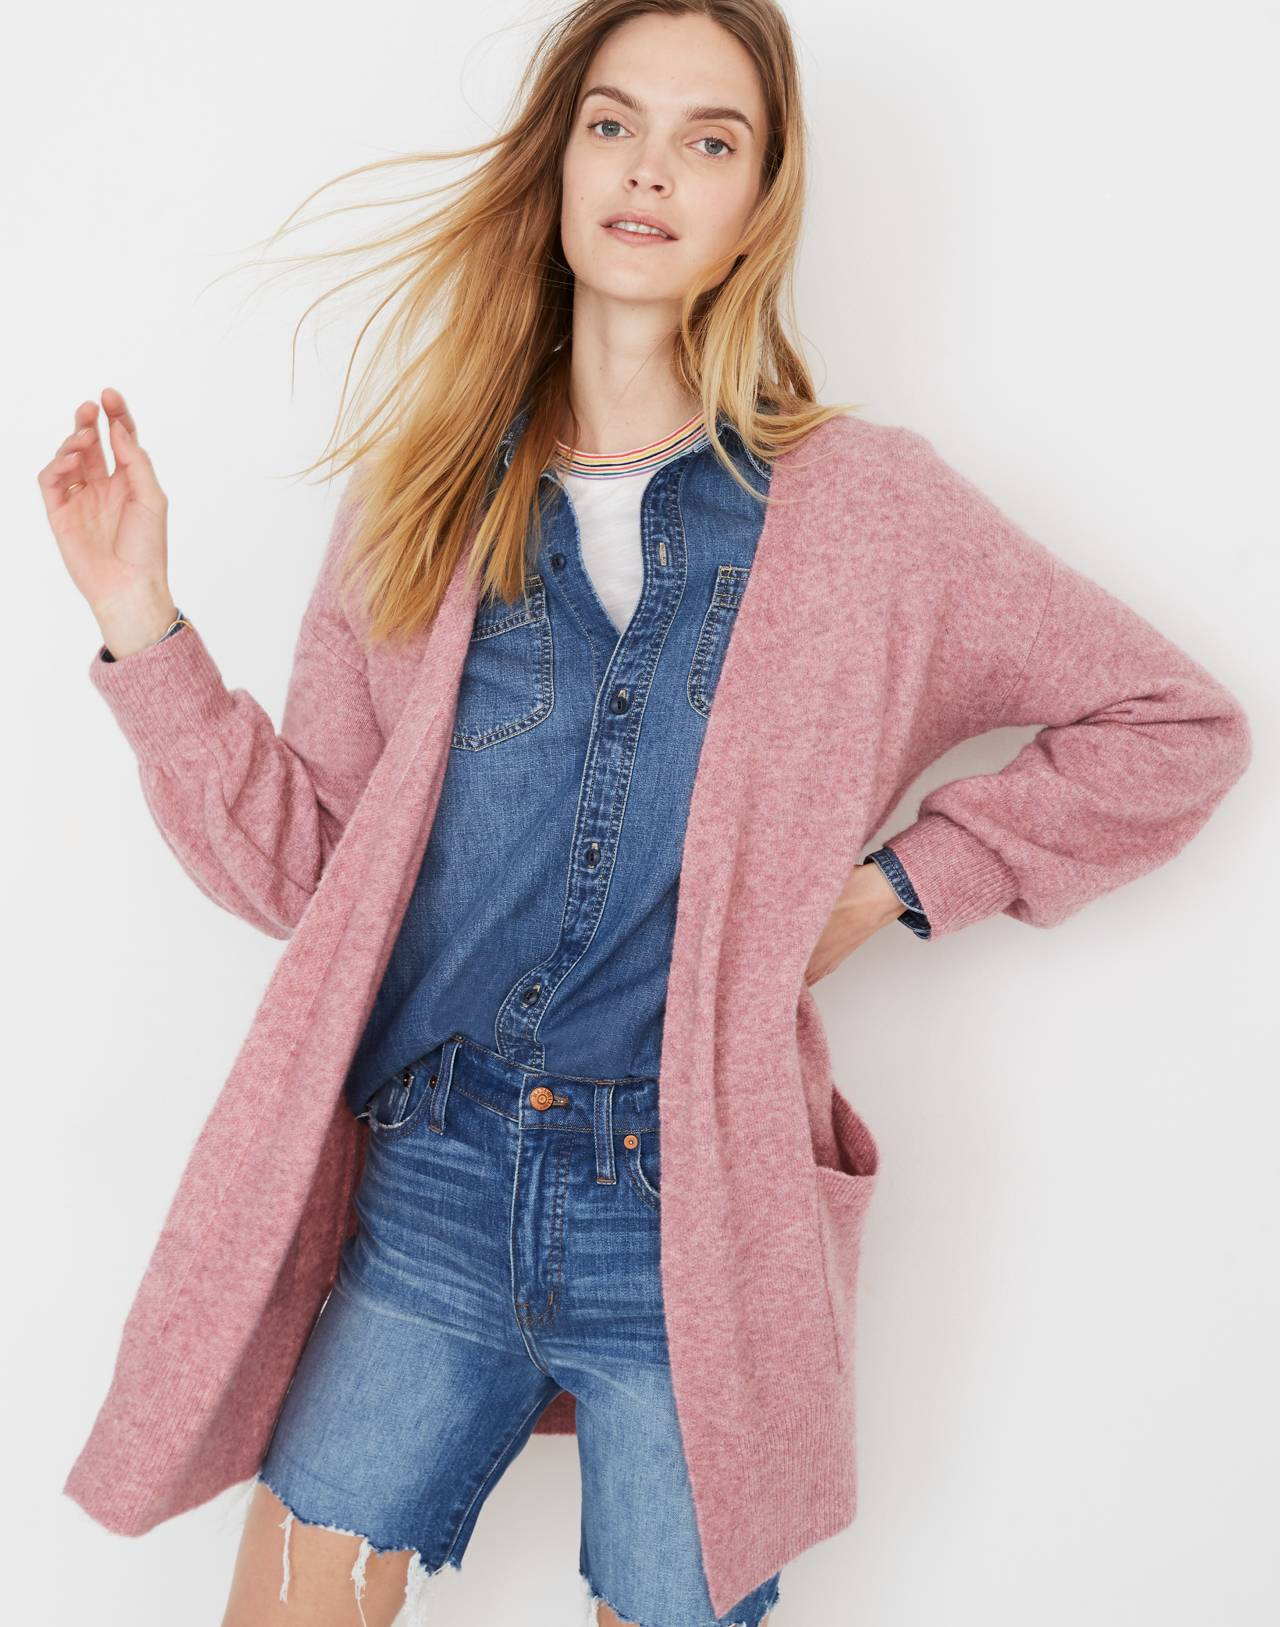 Edgewater Bubble-Sleeve Cardigan Sweater in heather mulberry image 1